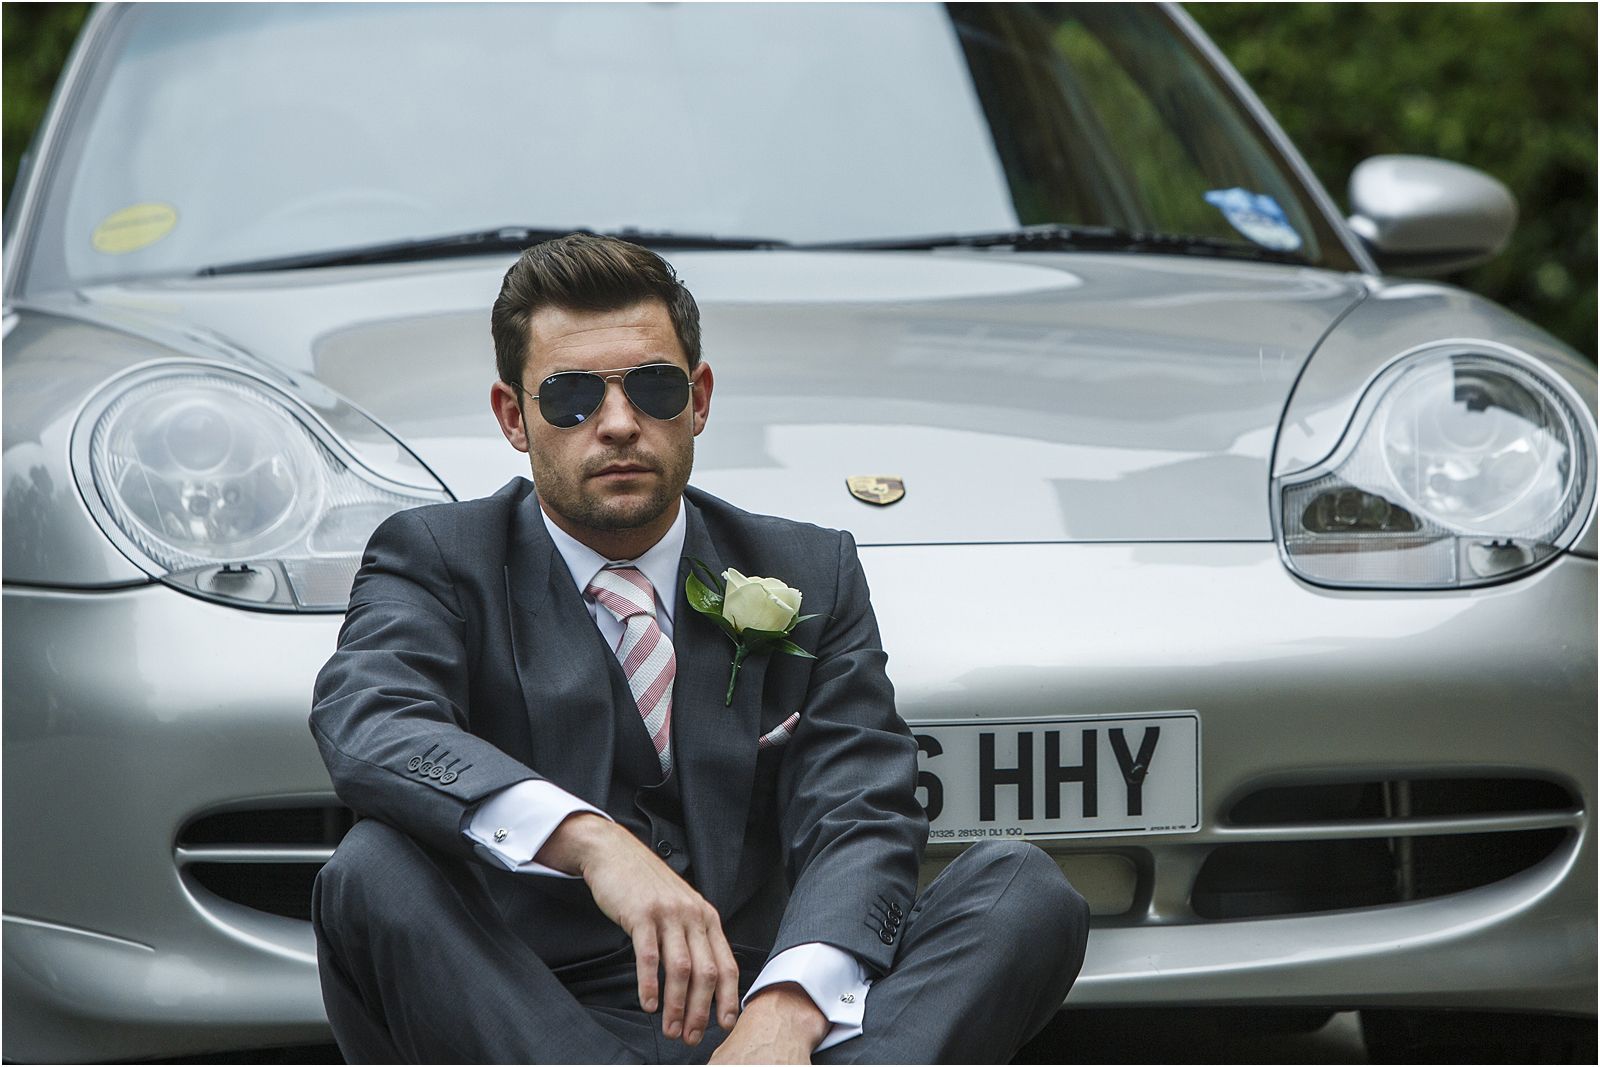 WEDDING AND EVENING SUITS - Made to measure suits for a special occasion